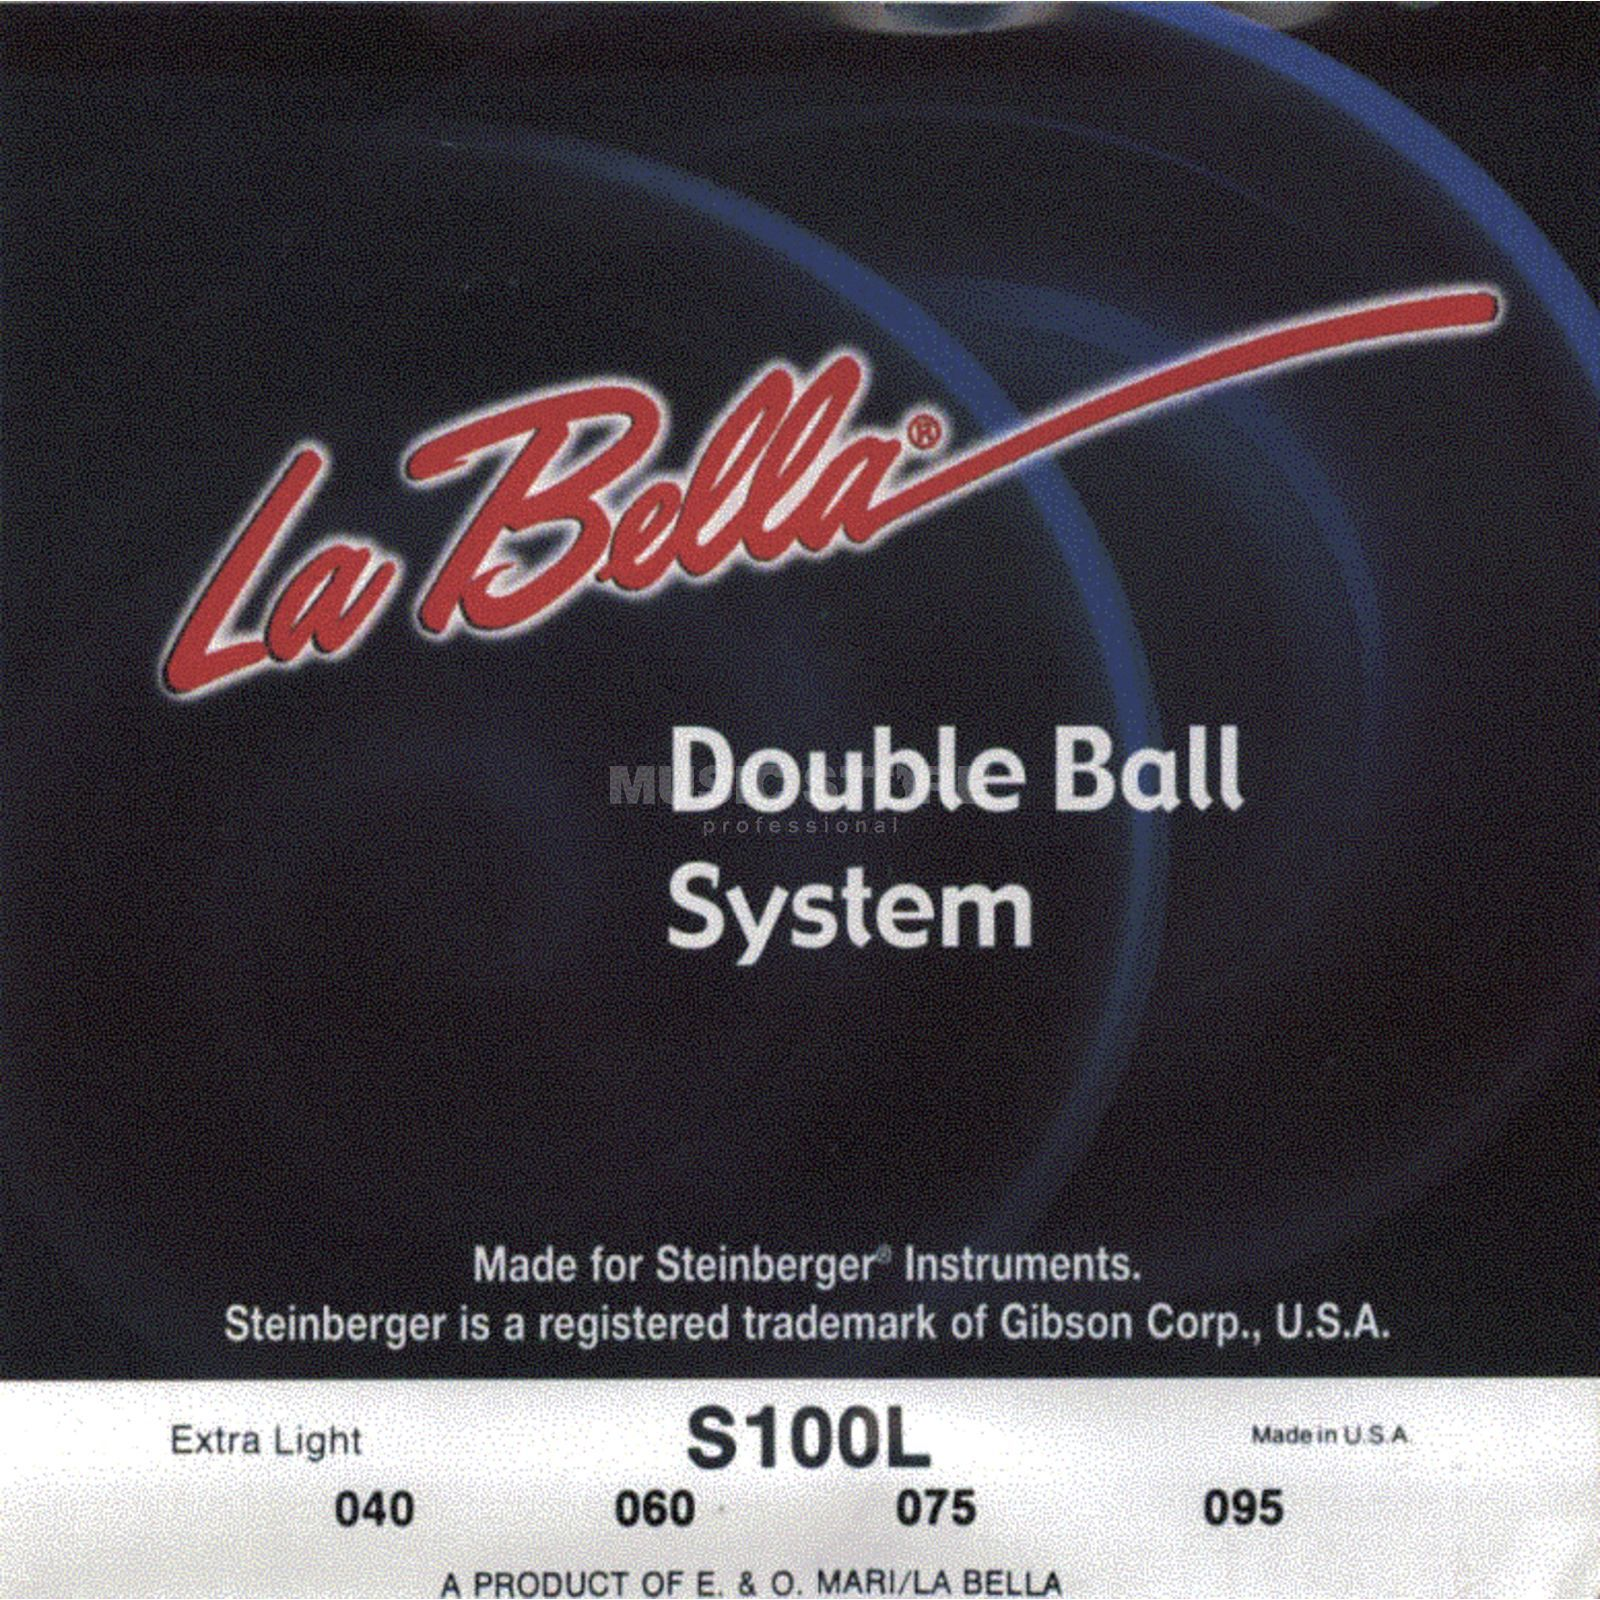 La Bella Bass Strings, 40-95, DoubleB. 4 String Set, S 100 L Produktbillede